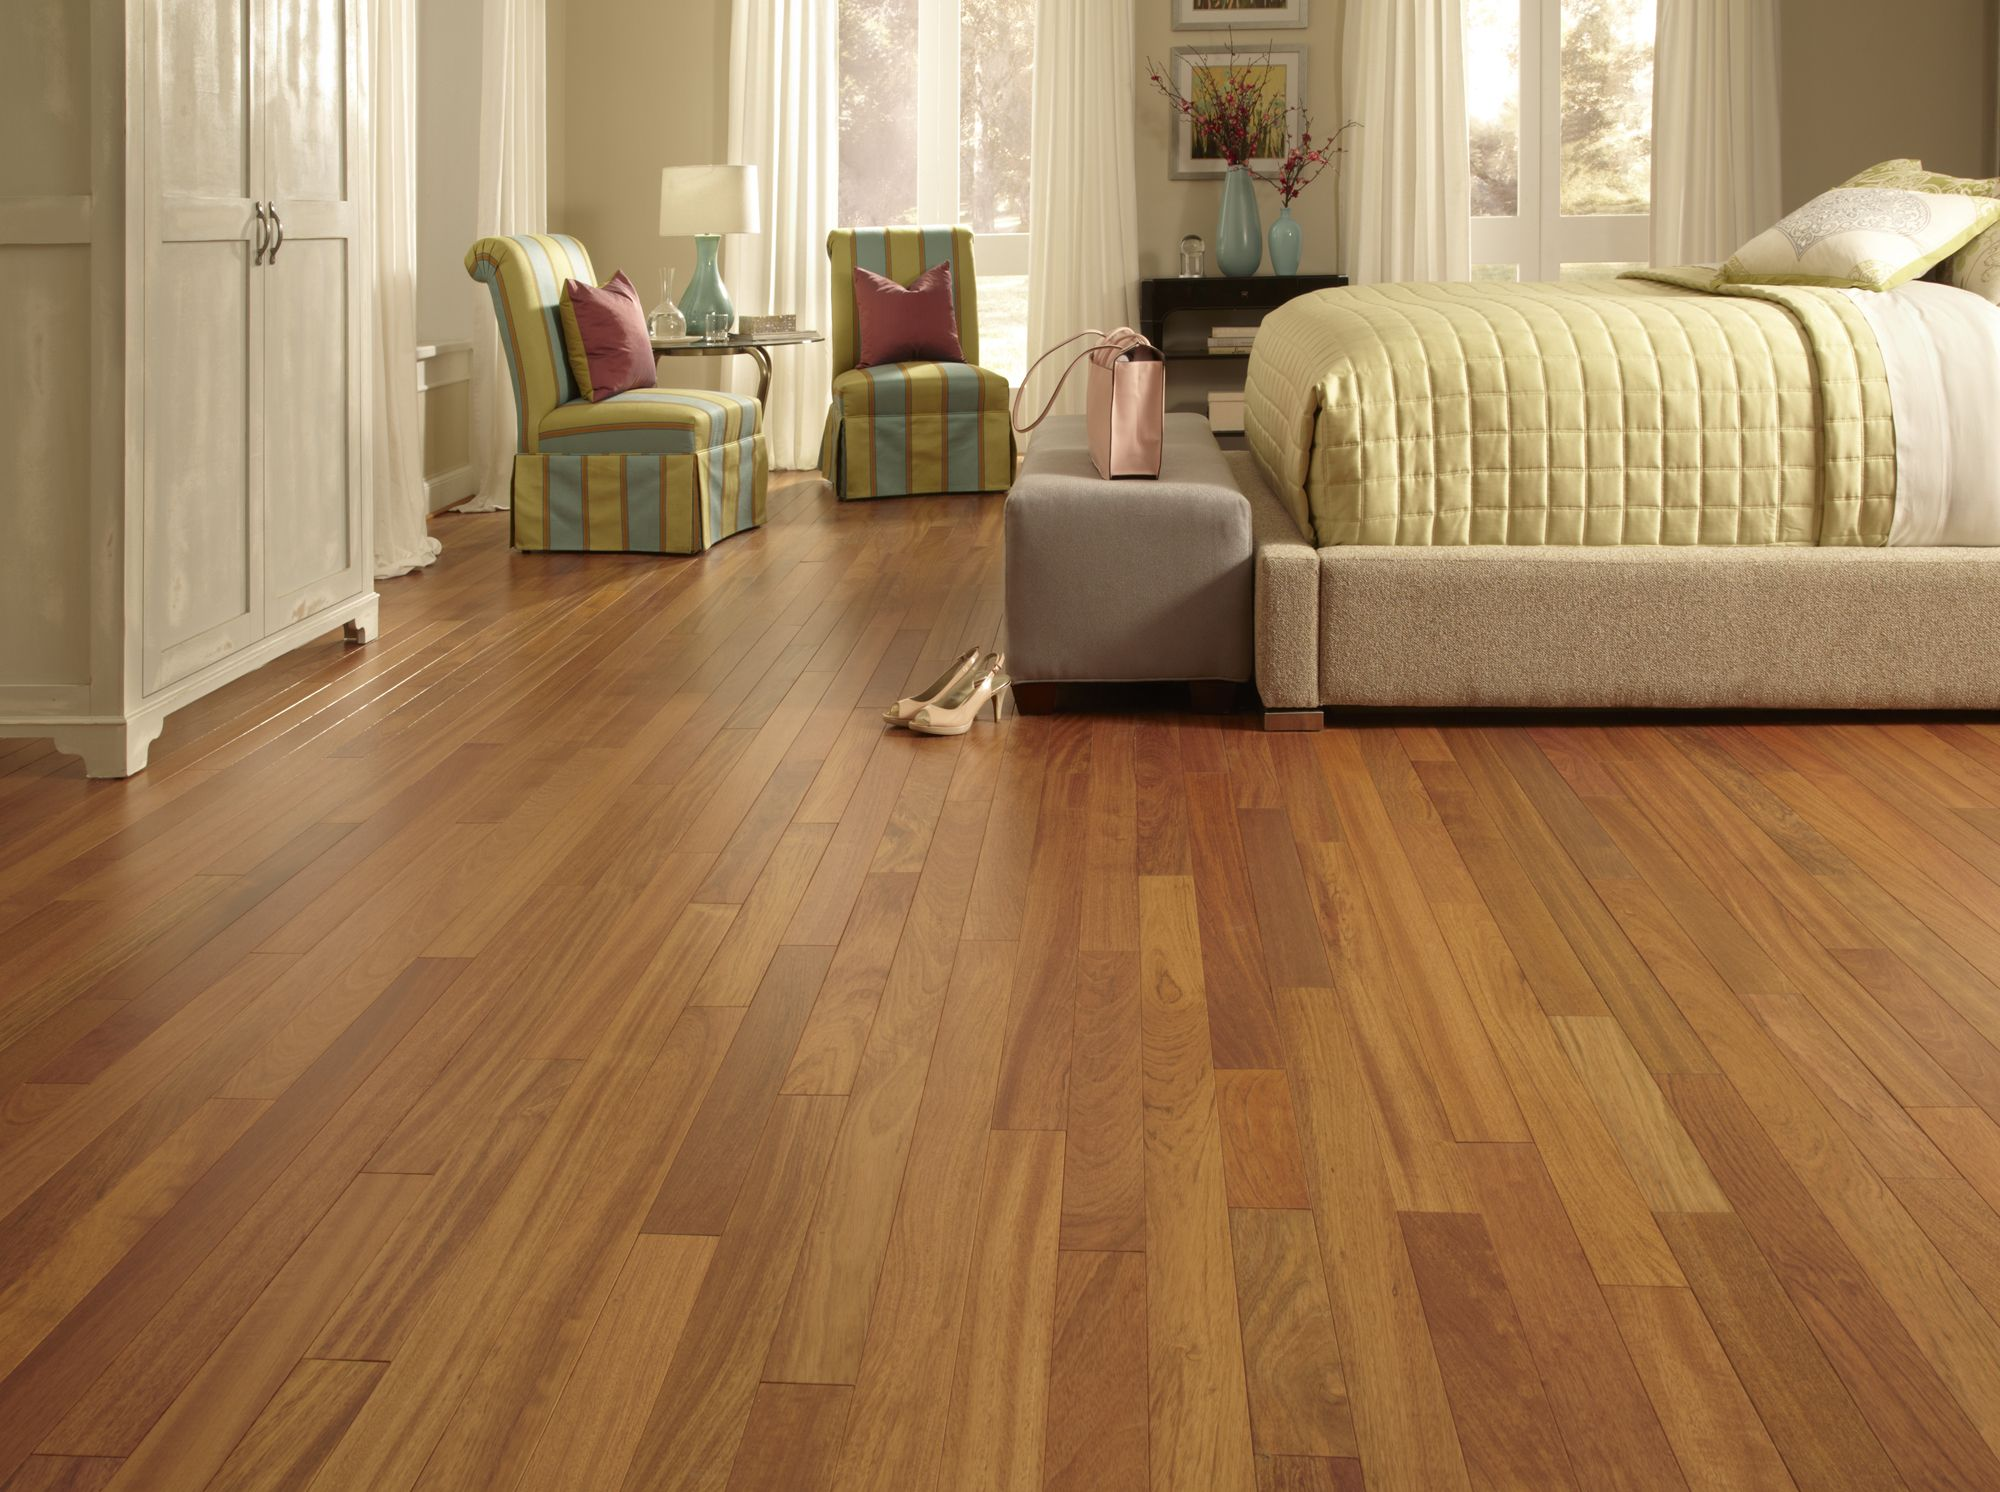 angle flooring chocolate koa mazama exotic brown pecan hardwood floor brazilian p collection